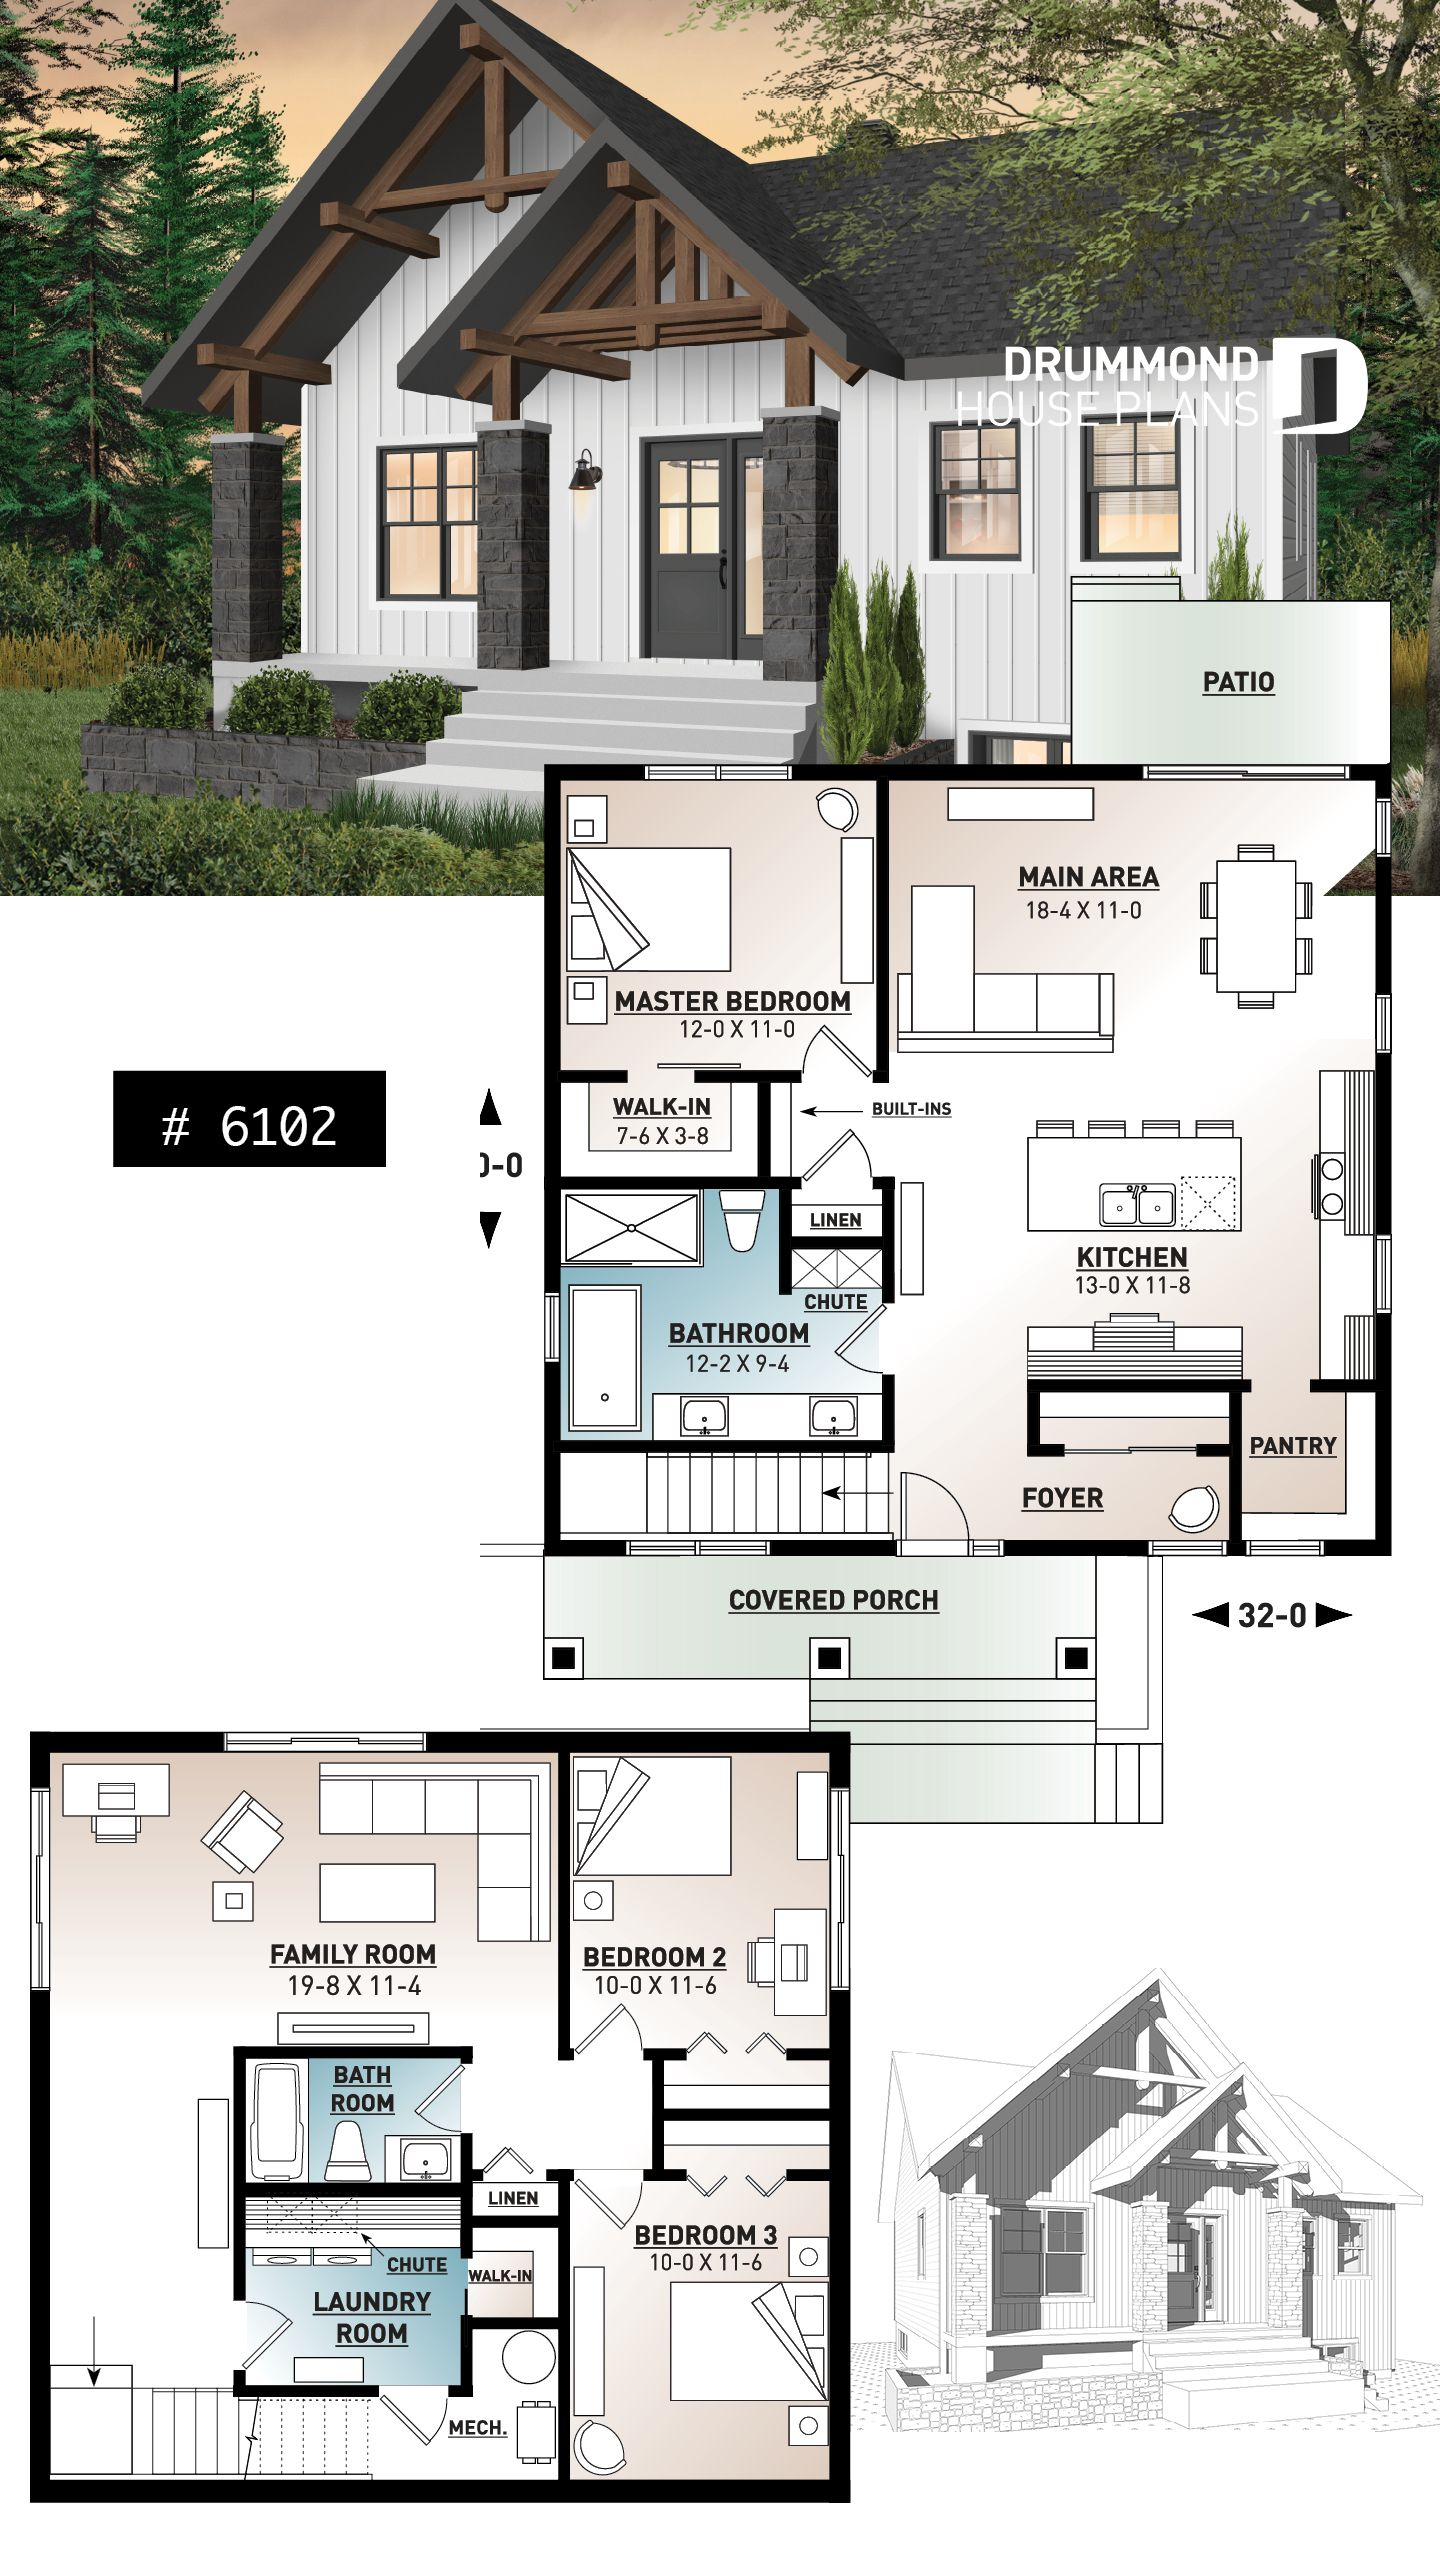 Discover The Plan 6102 Nordika Which Will Please You For Its 1 2 3 Bedrooms And For Its Modern Rustic Styles Rustic House Plans Bungalow House Plans Sims House Plans